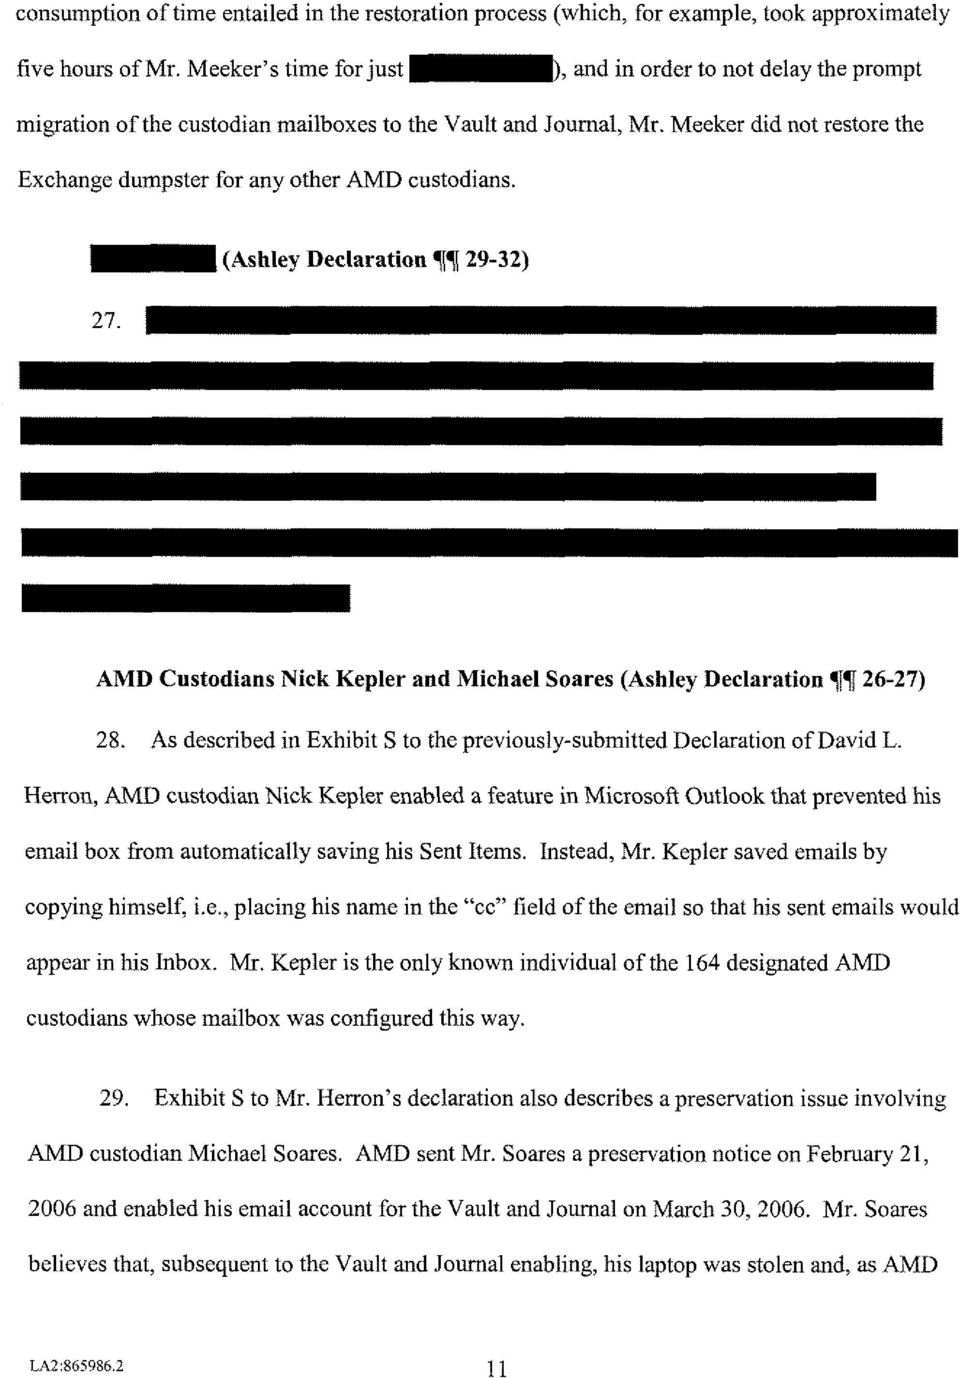 Meeker did not restore the Exchange dumpster for any other AMD custodians. ( A s h l e y Declaration qq 29-32 27. AMD Custodians Nick Kepler and Michael Soares (Ashley Declaration 717 26-27 28.